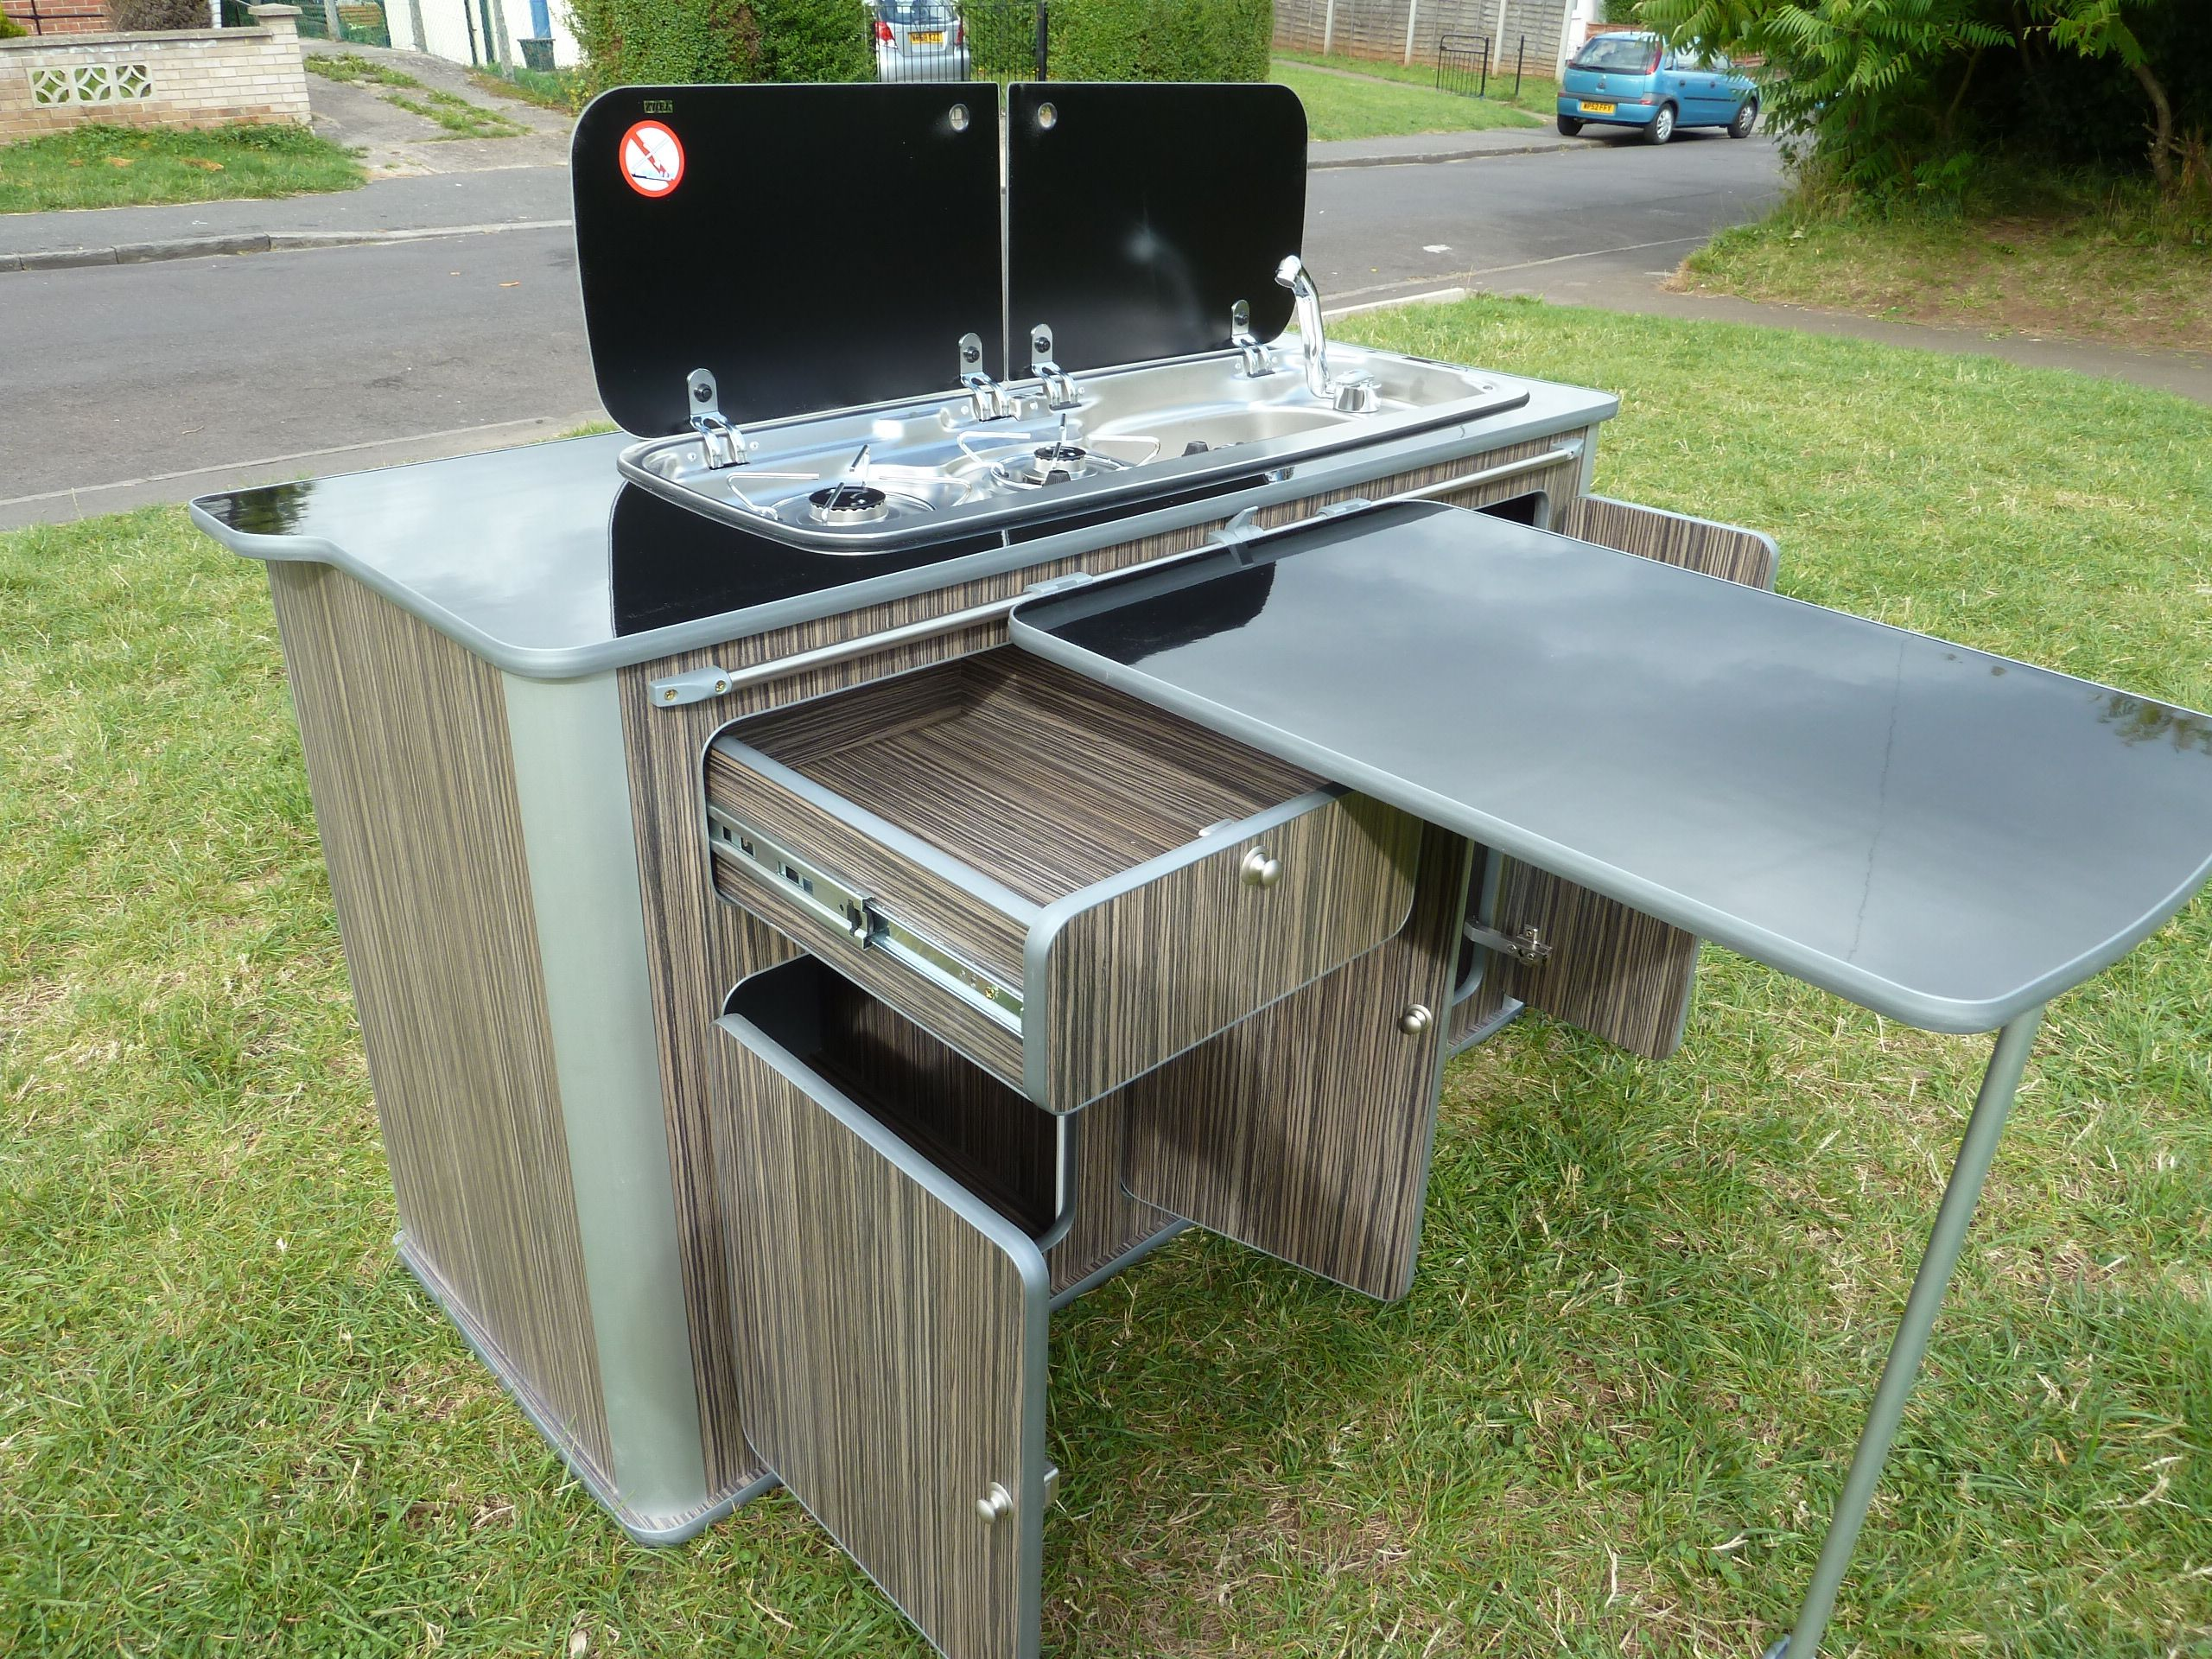 Caravan With Slide Out Kitchen Campervan Slide Out Kitchen Google Search T2